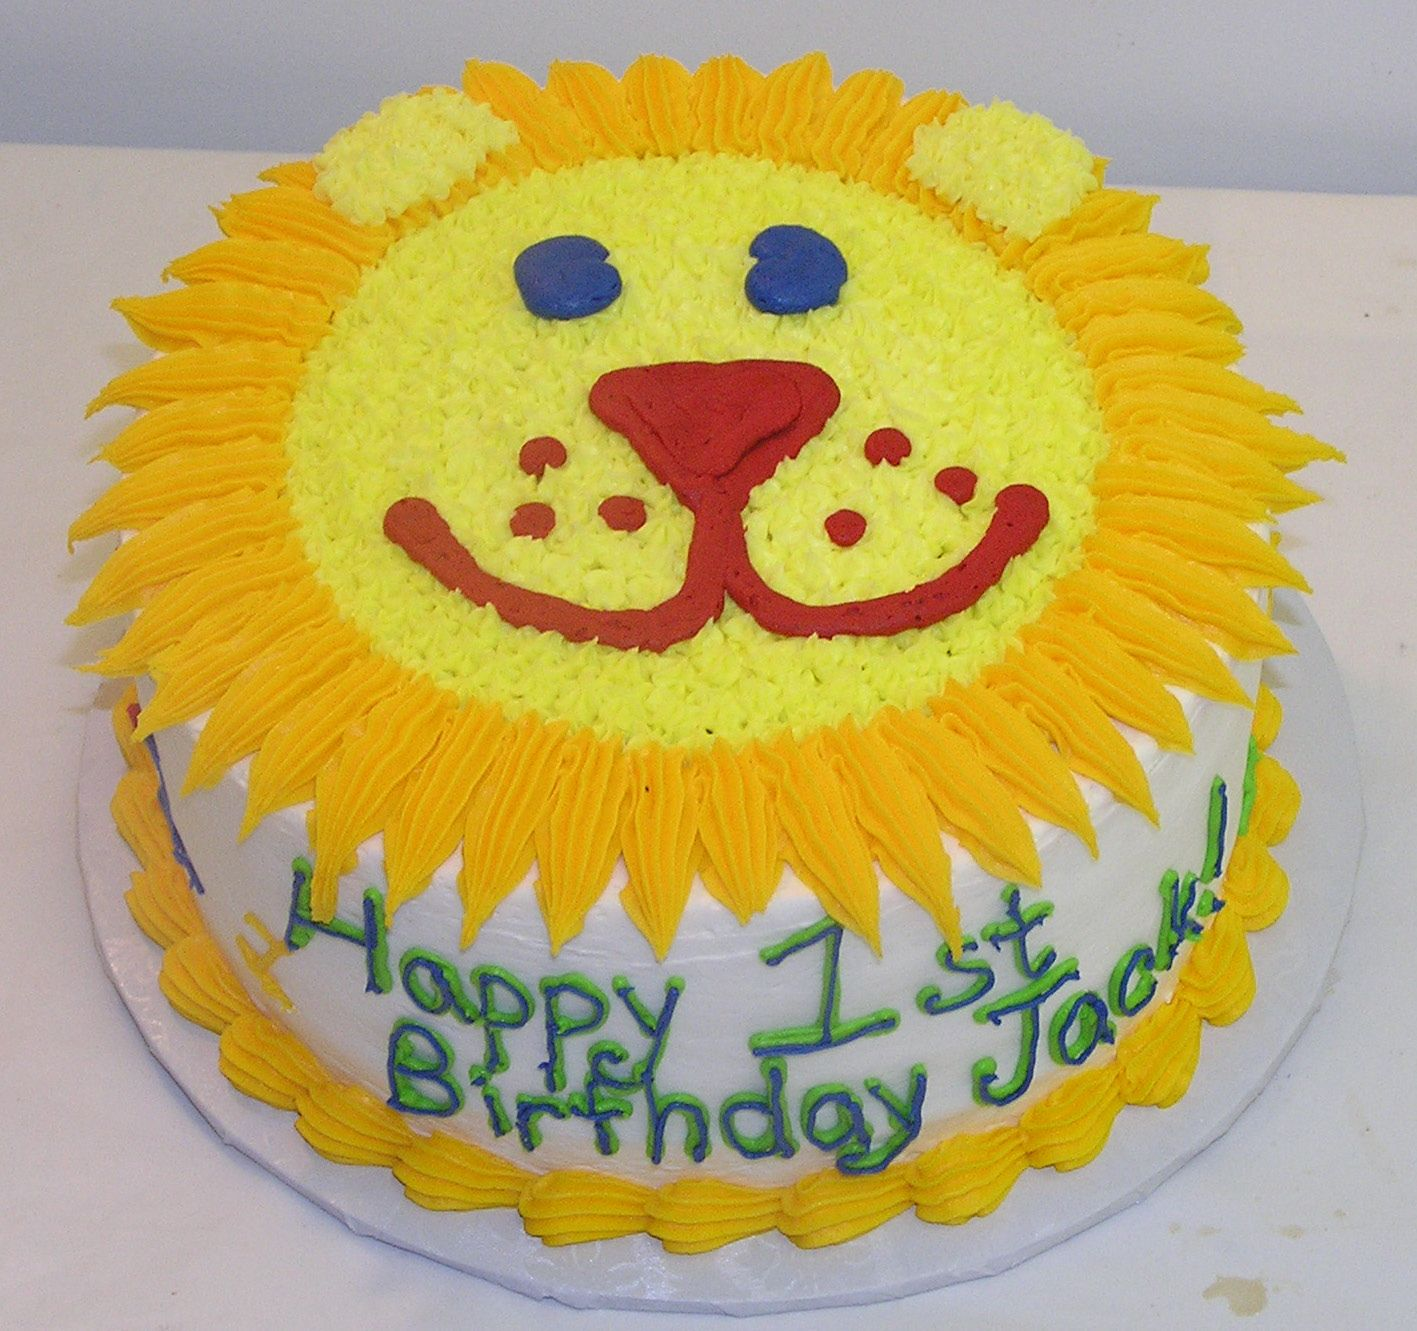 lion first birthday party birthdays lion birthday cakes and cakes on cake pans for babys first birthday